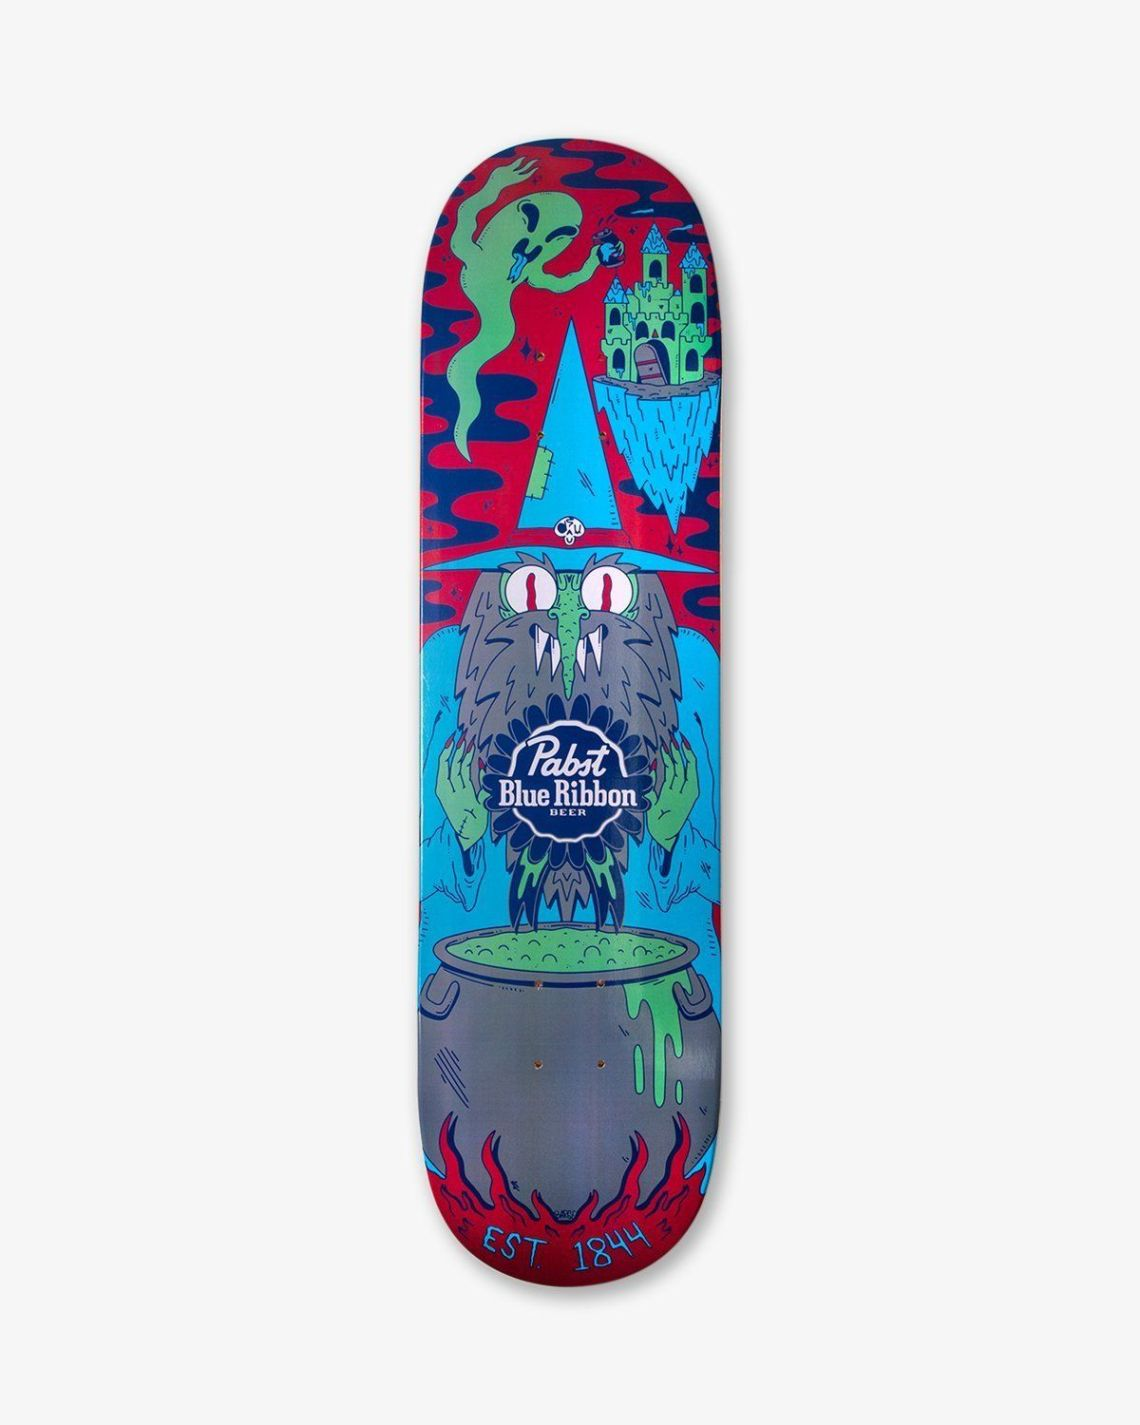 Ride With The Wizard Skateboard By Dakota Cates For Pabst Blue Ribbon 1